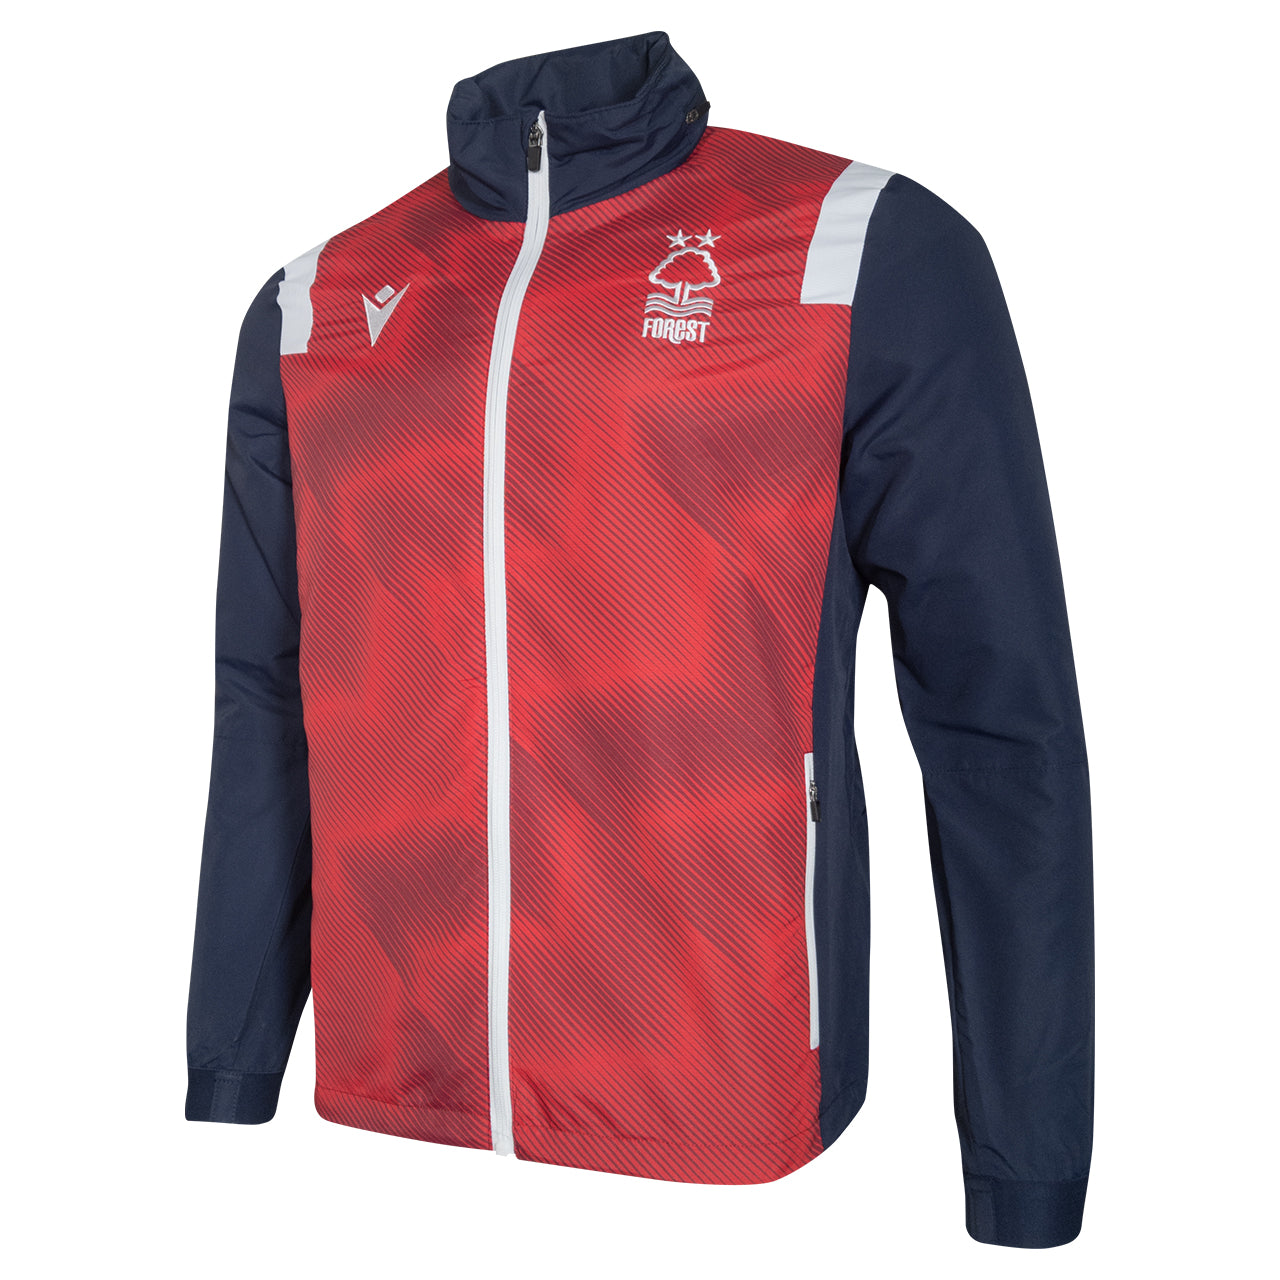 NFFC Mens Player Training Shower Jacket 2020/21